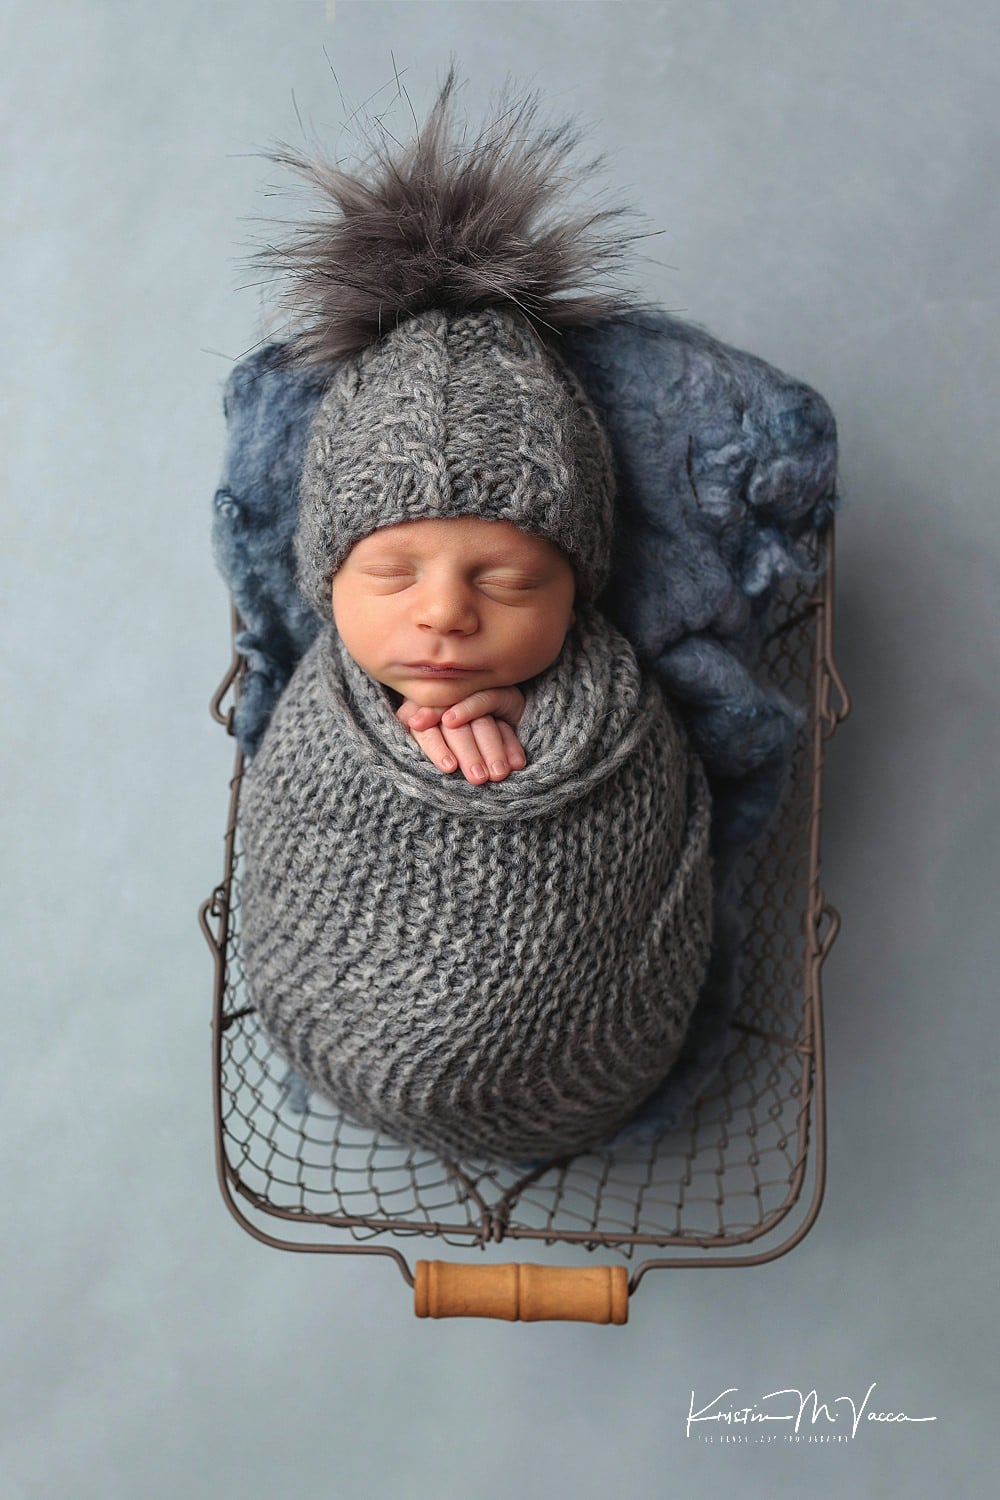 Photos from our blue and gray newborn photoshoot with baby Bennett by West Hartford photographer The Flash Lady Photography